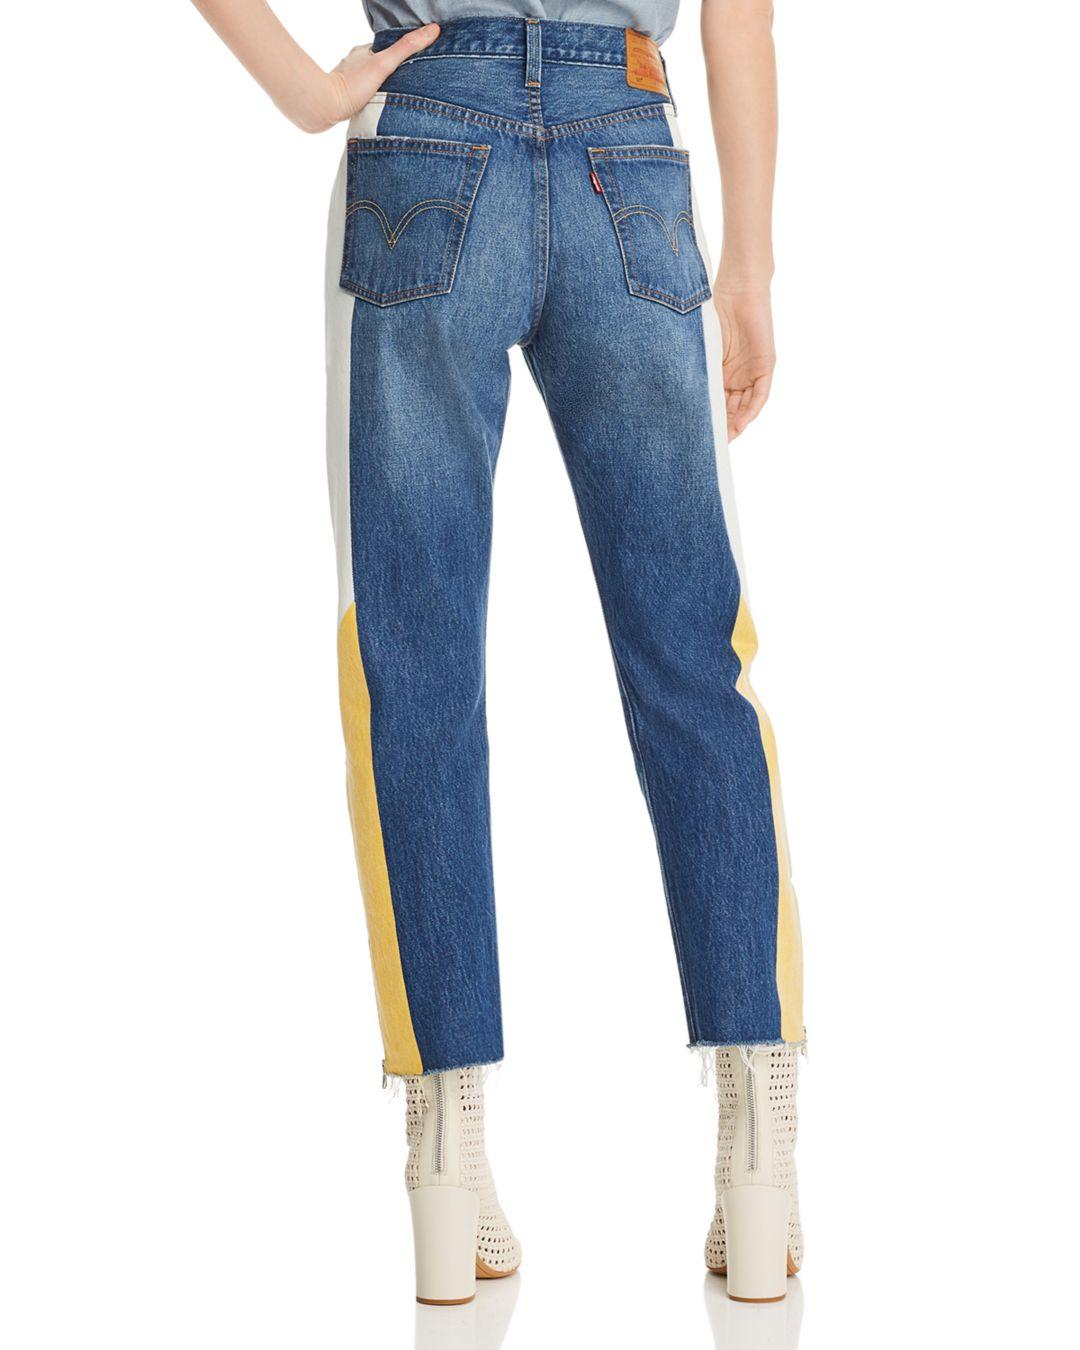 b89e434c359d Lyst - Levi s 501 Moto Straight Jeans In Show Teeth in Blue